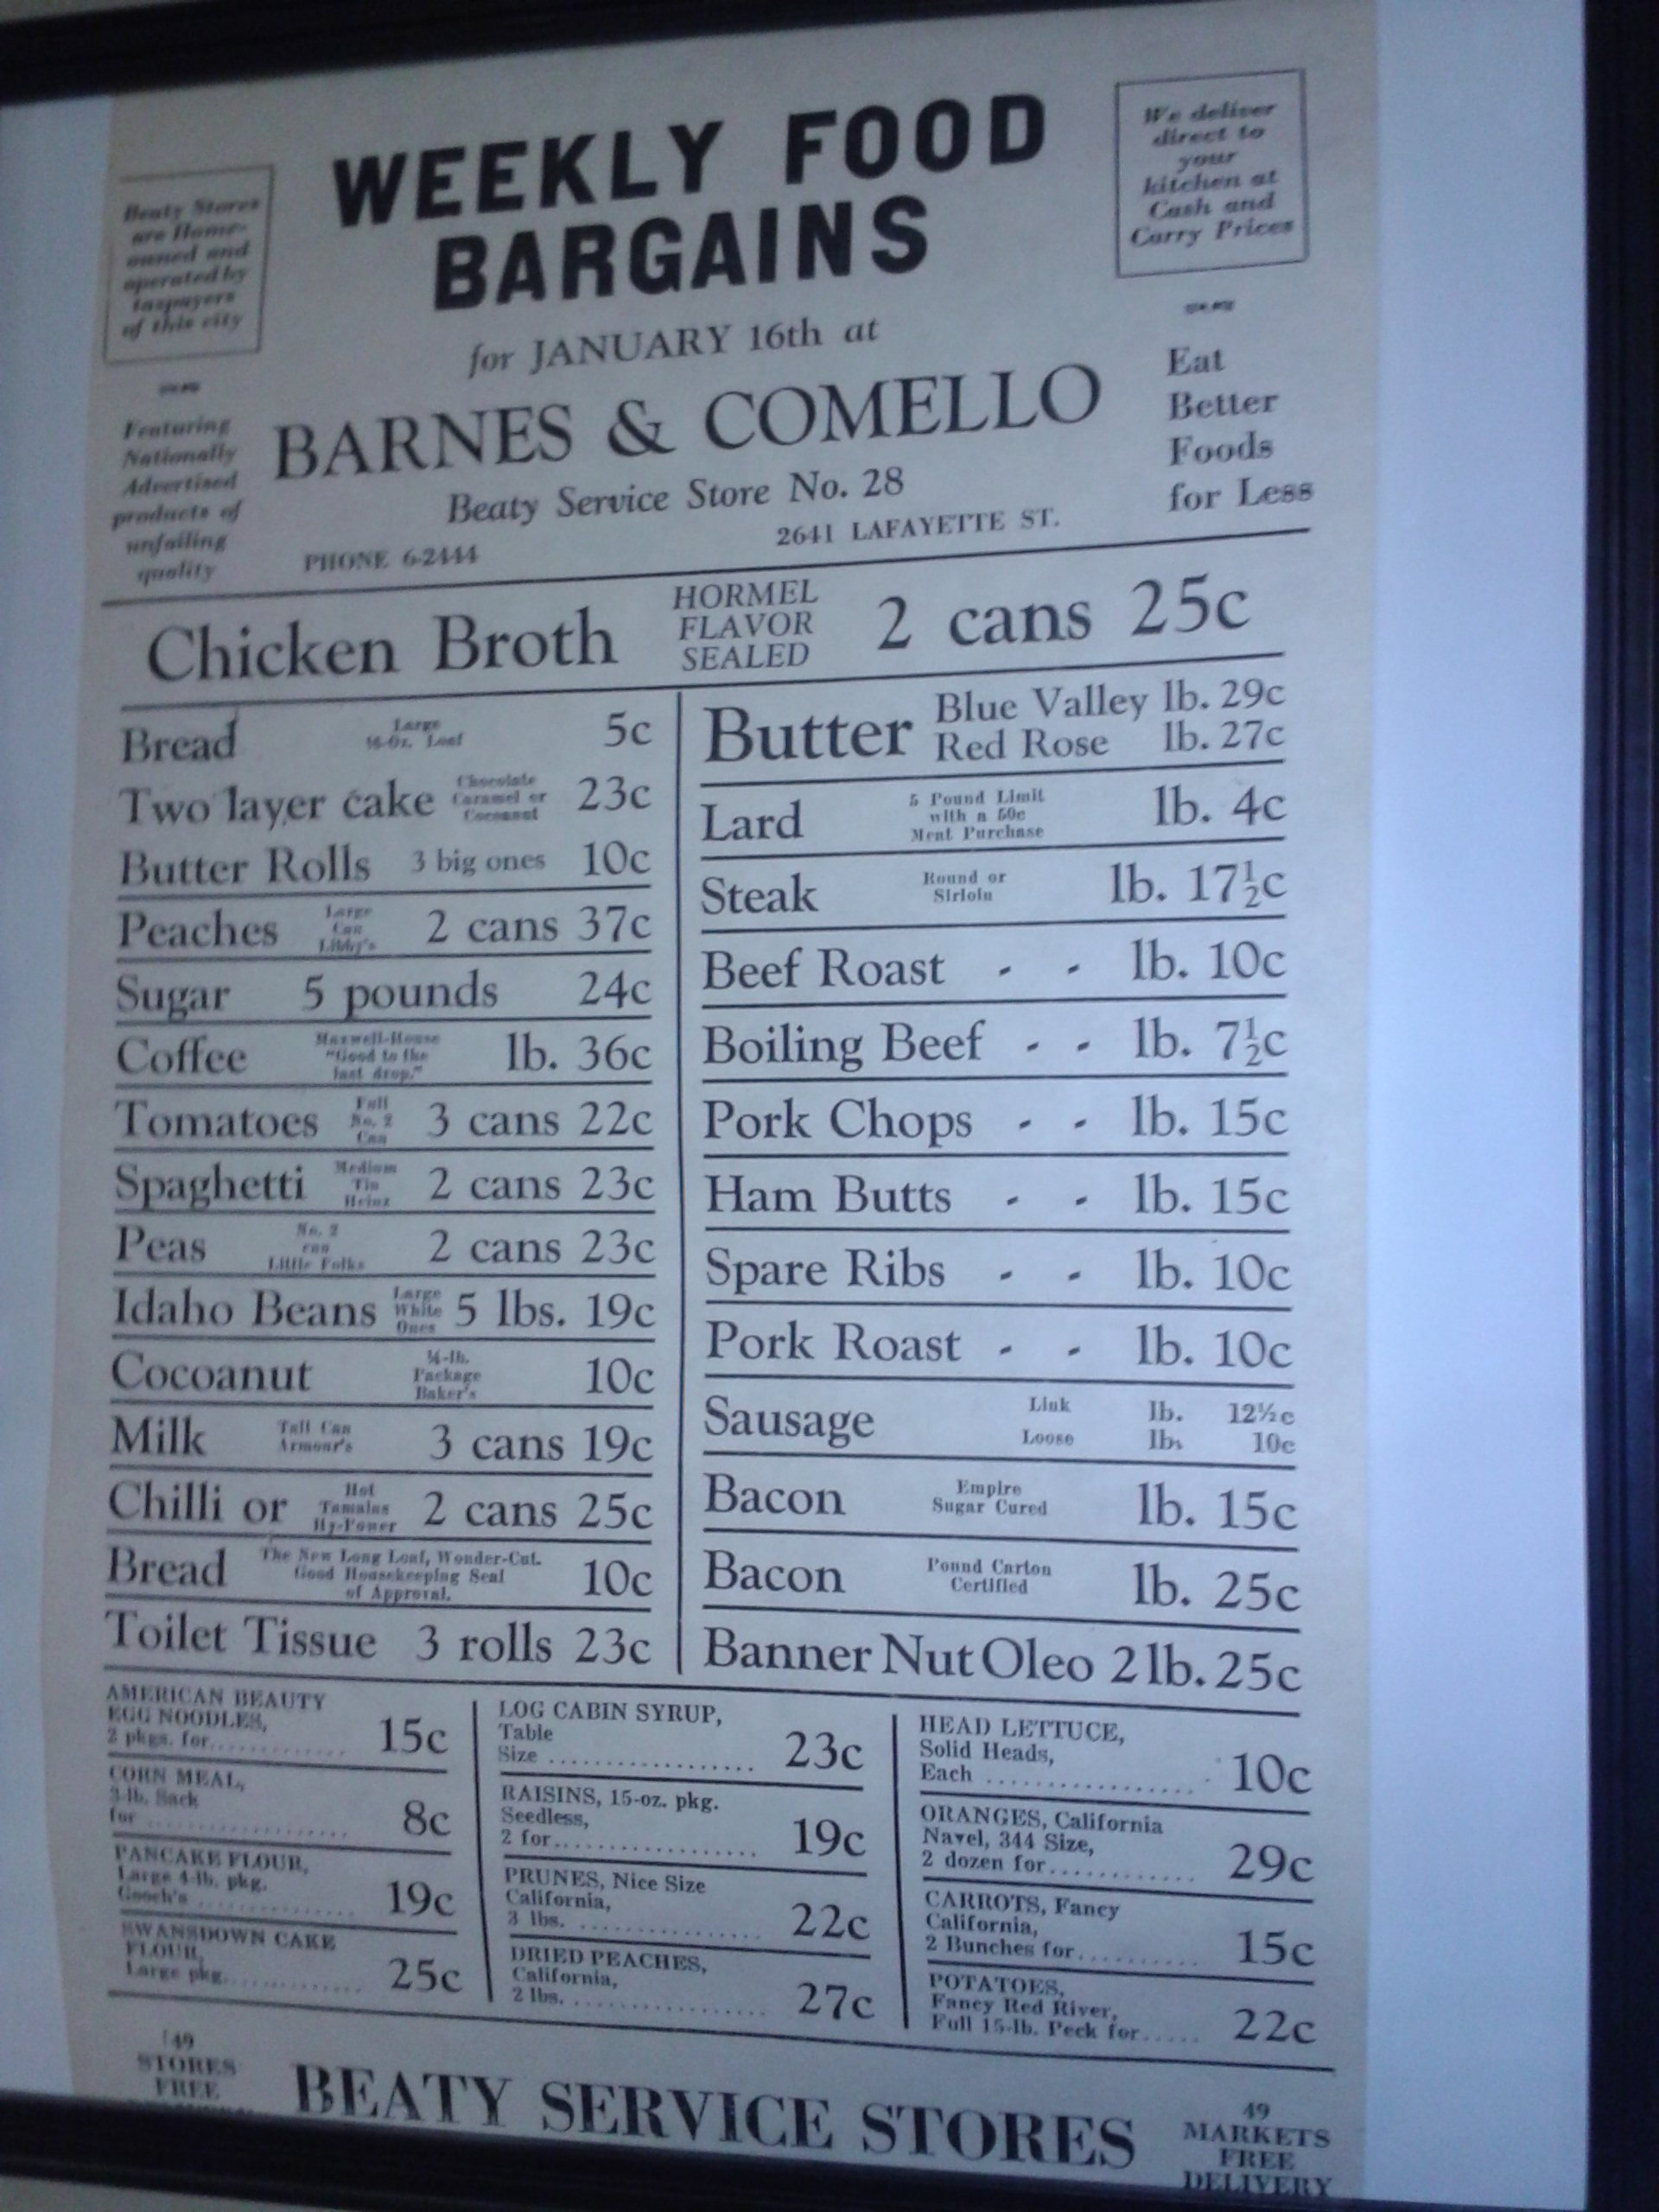 Barnes and Comello – Beaty Grocery Store Prices – Located 2641 Lafayette St. Joseph Mo